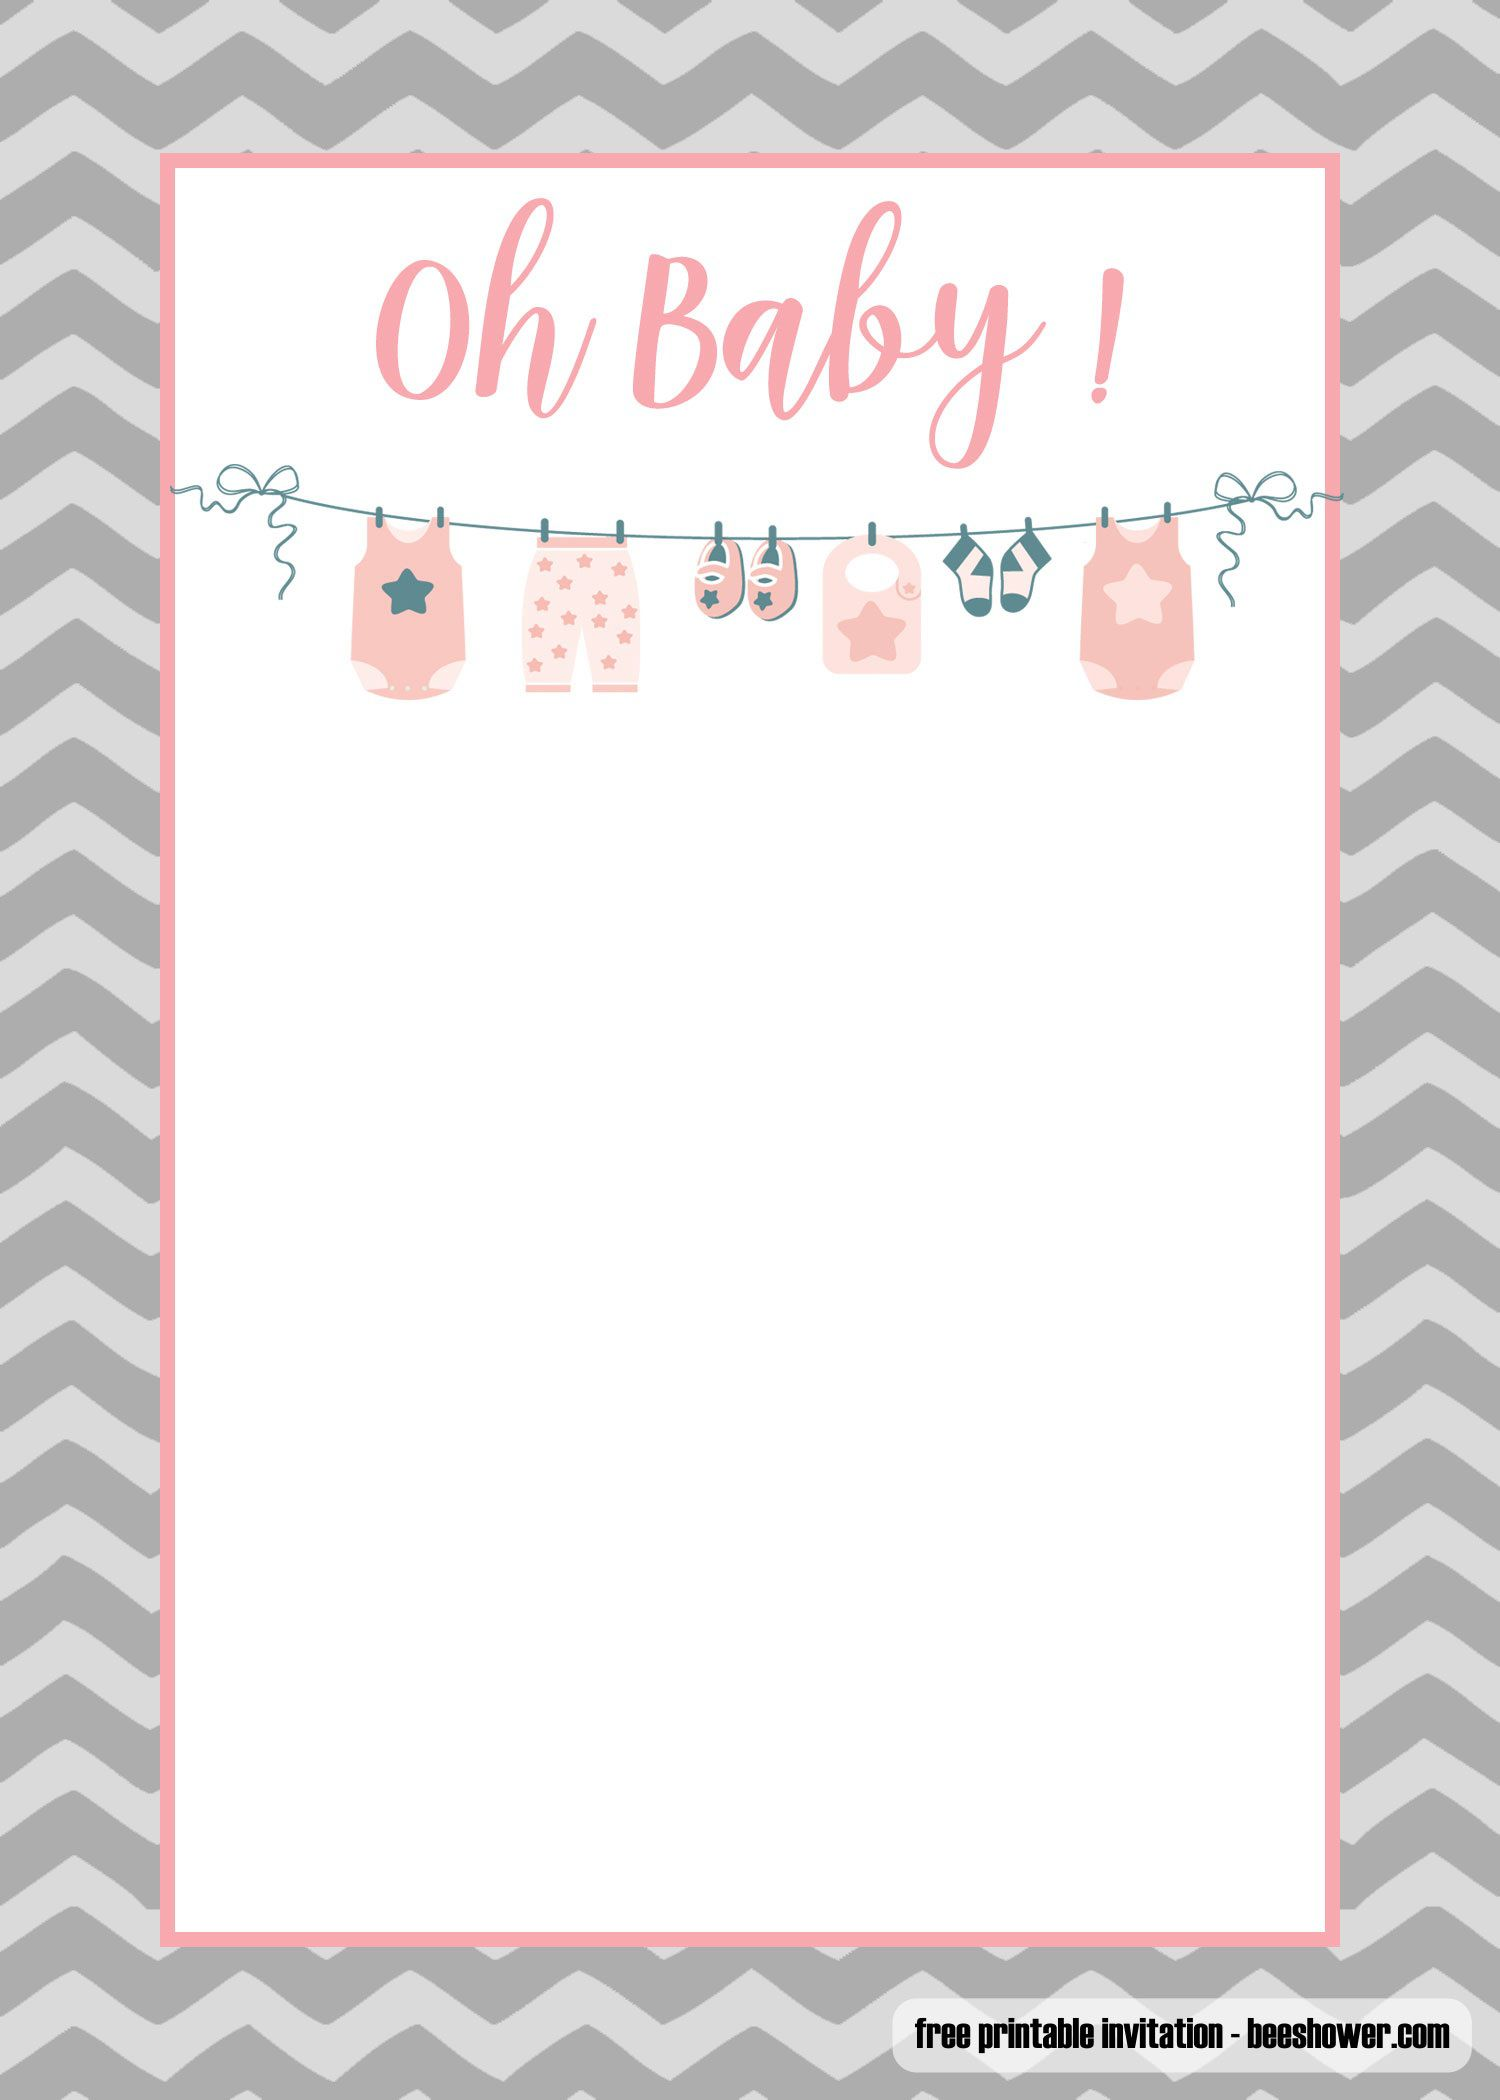 008 Remarkable Baby Shower Template Free Printable Photo  Superhero Invitation For A Boy DiaperFull